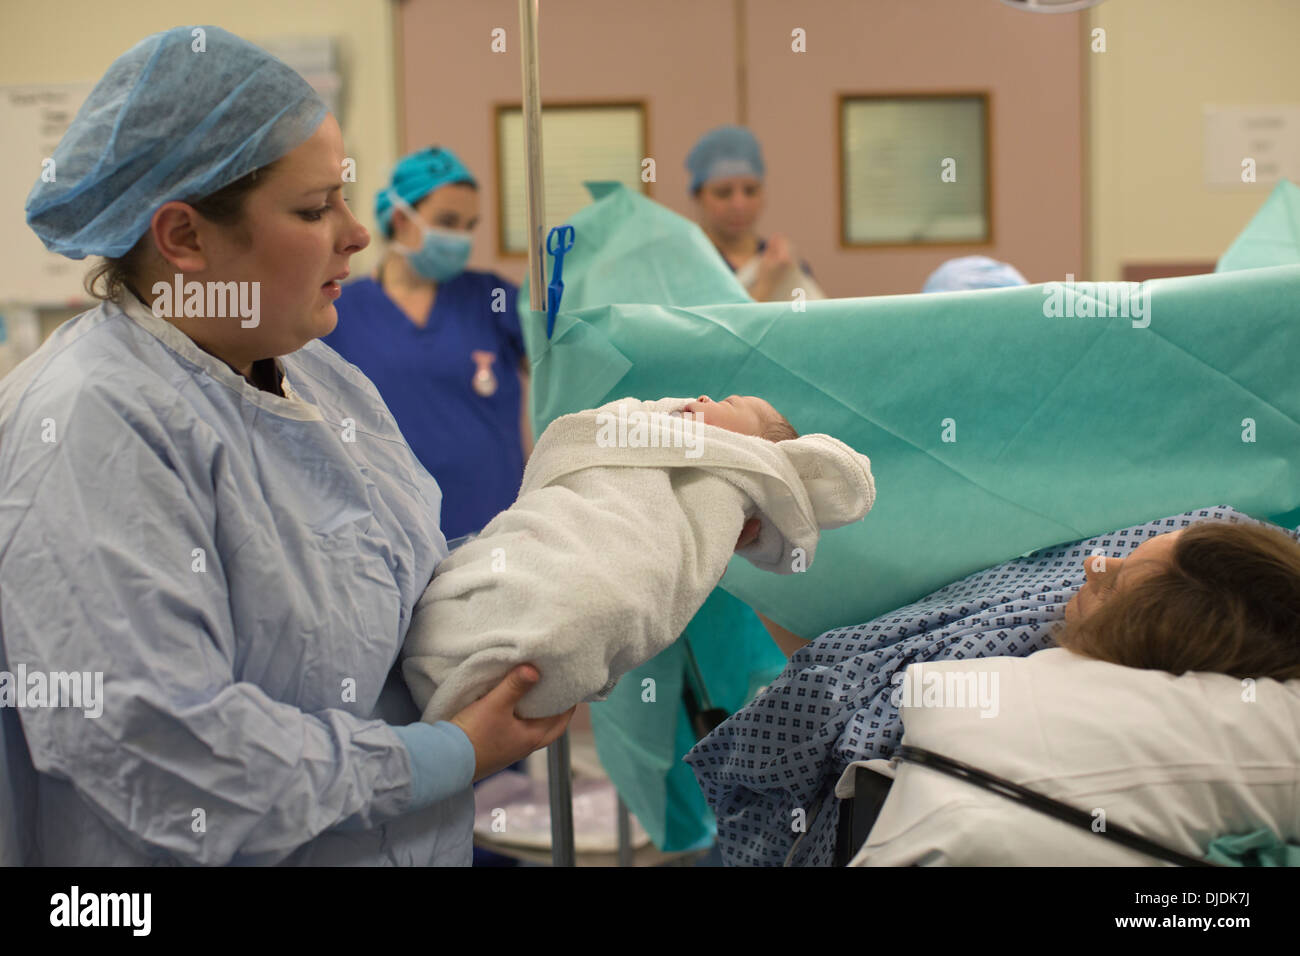 Newborn baby boy being checked by nurses in hospital maternity theatre on the Labour Ward at hospital, Kingston Upon Thames, UK - Stock Image